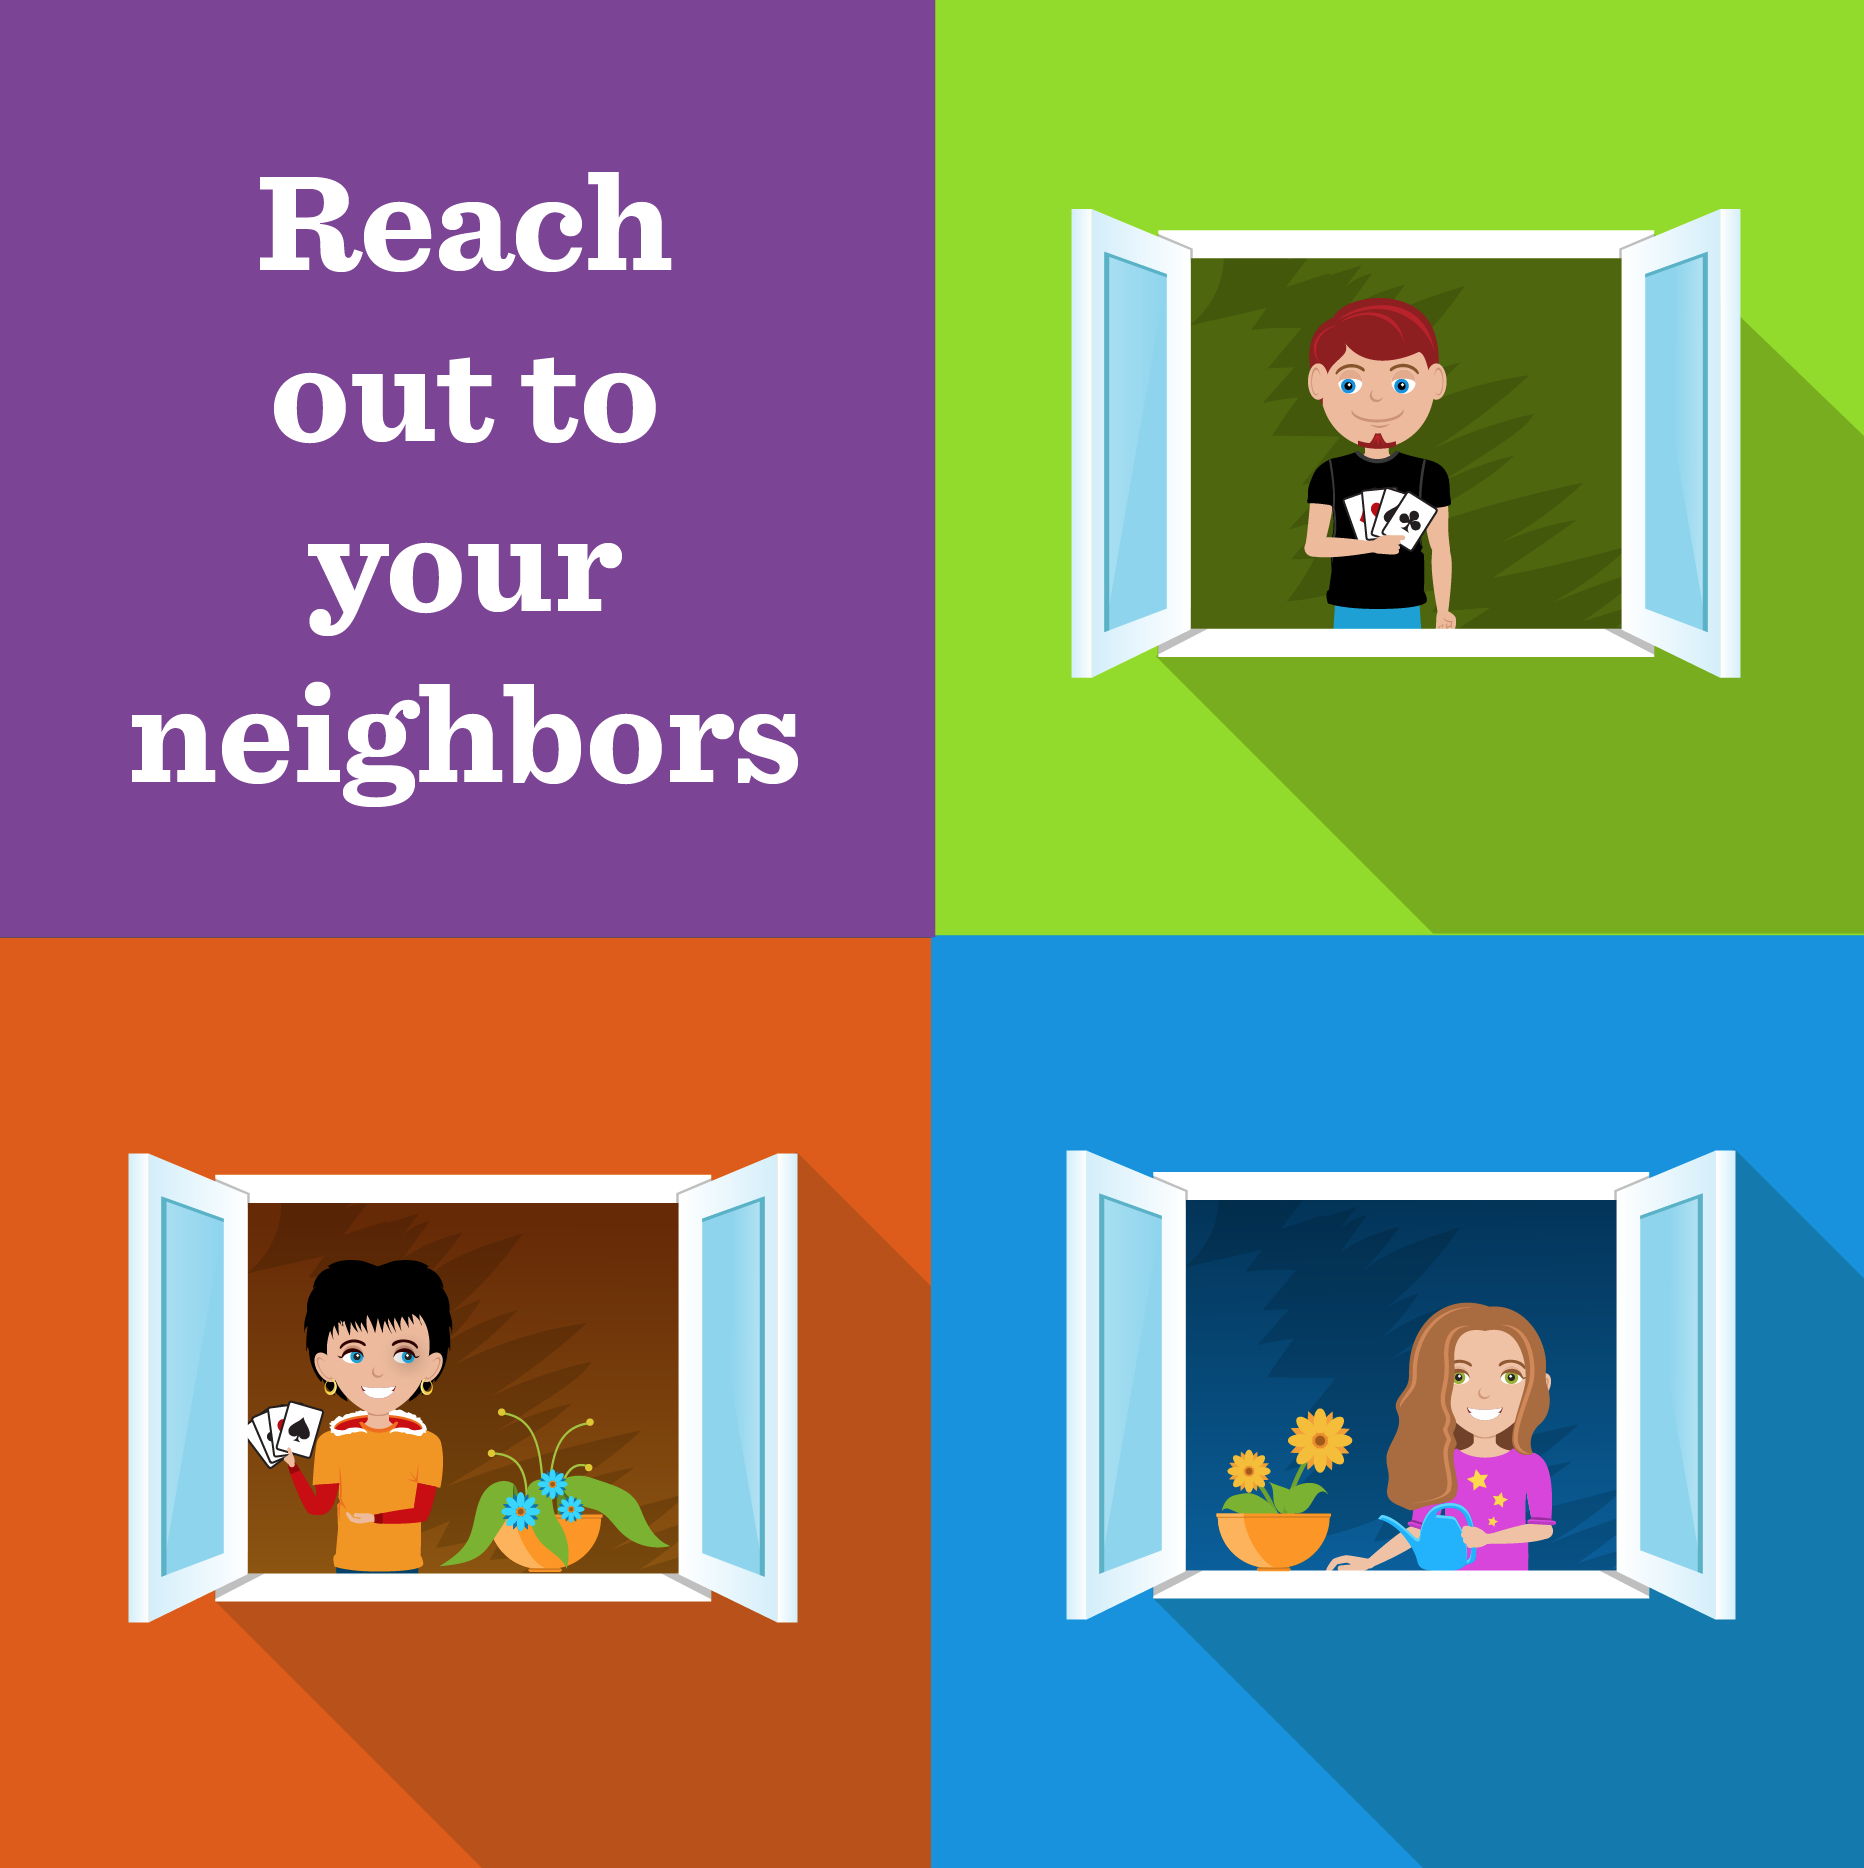 Reach out to your neighbors